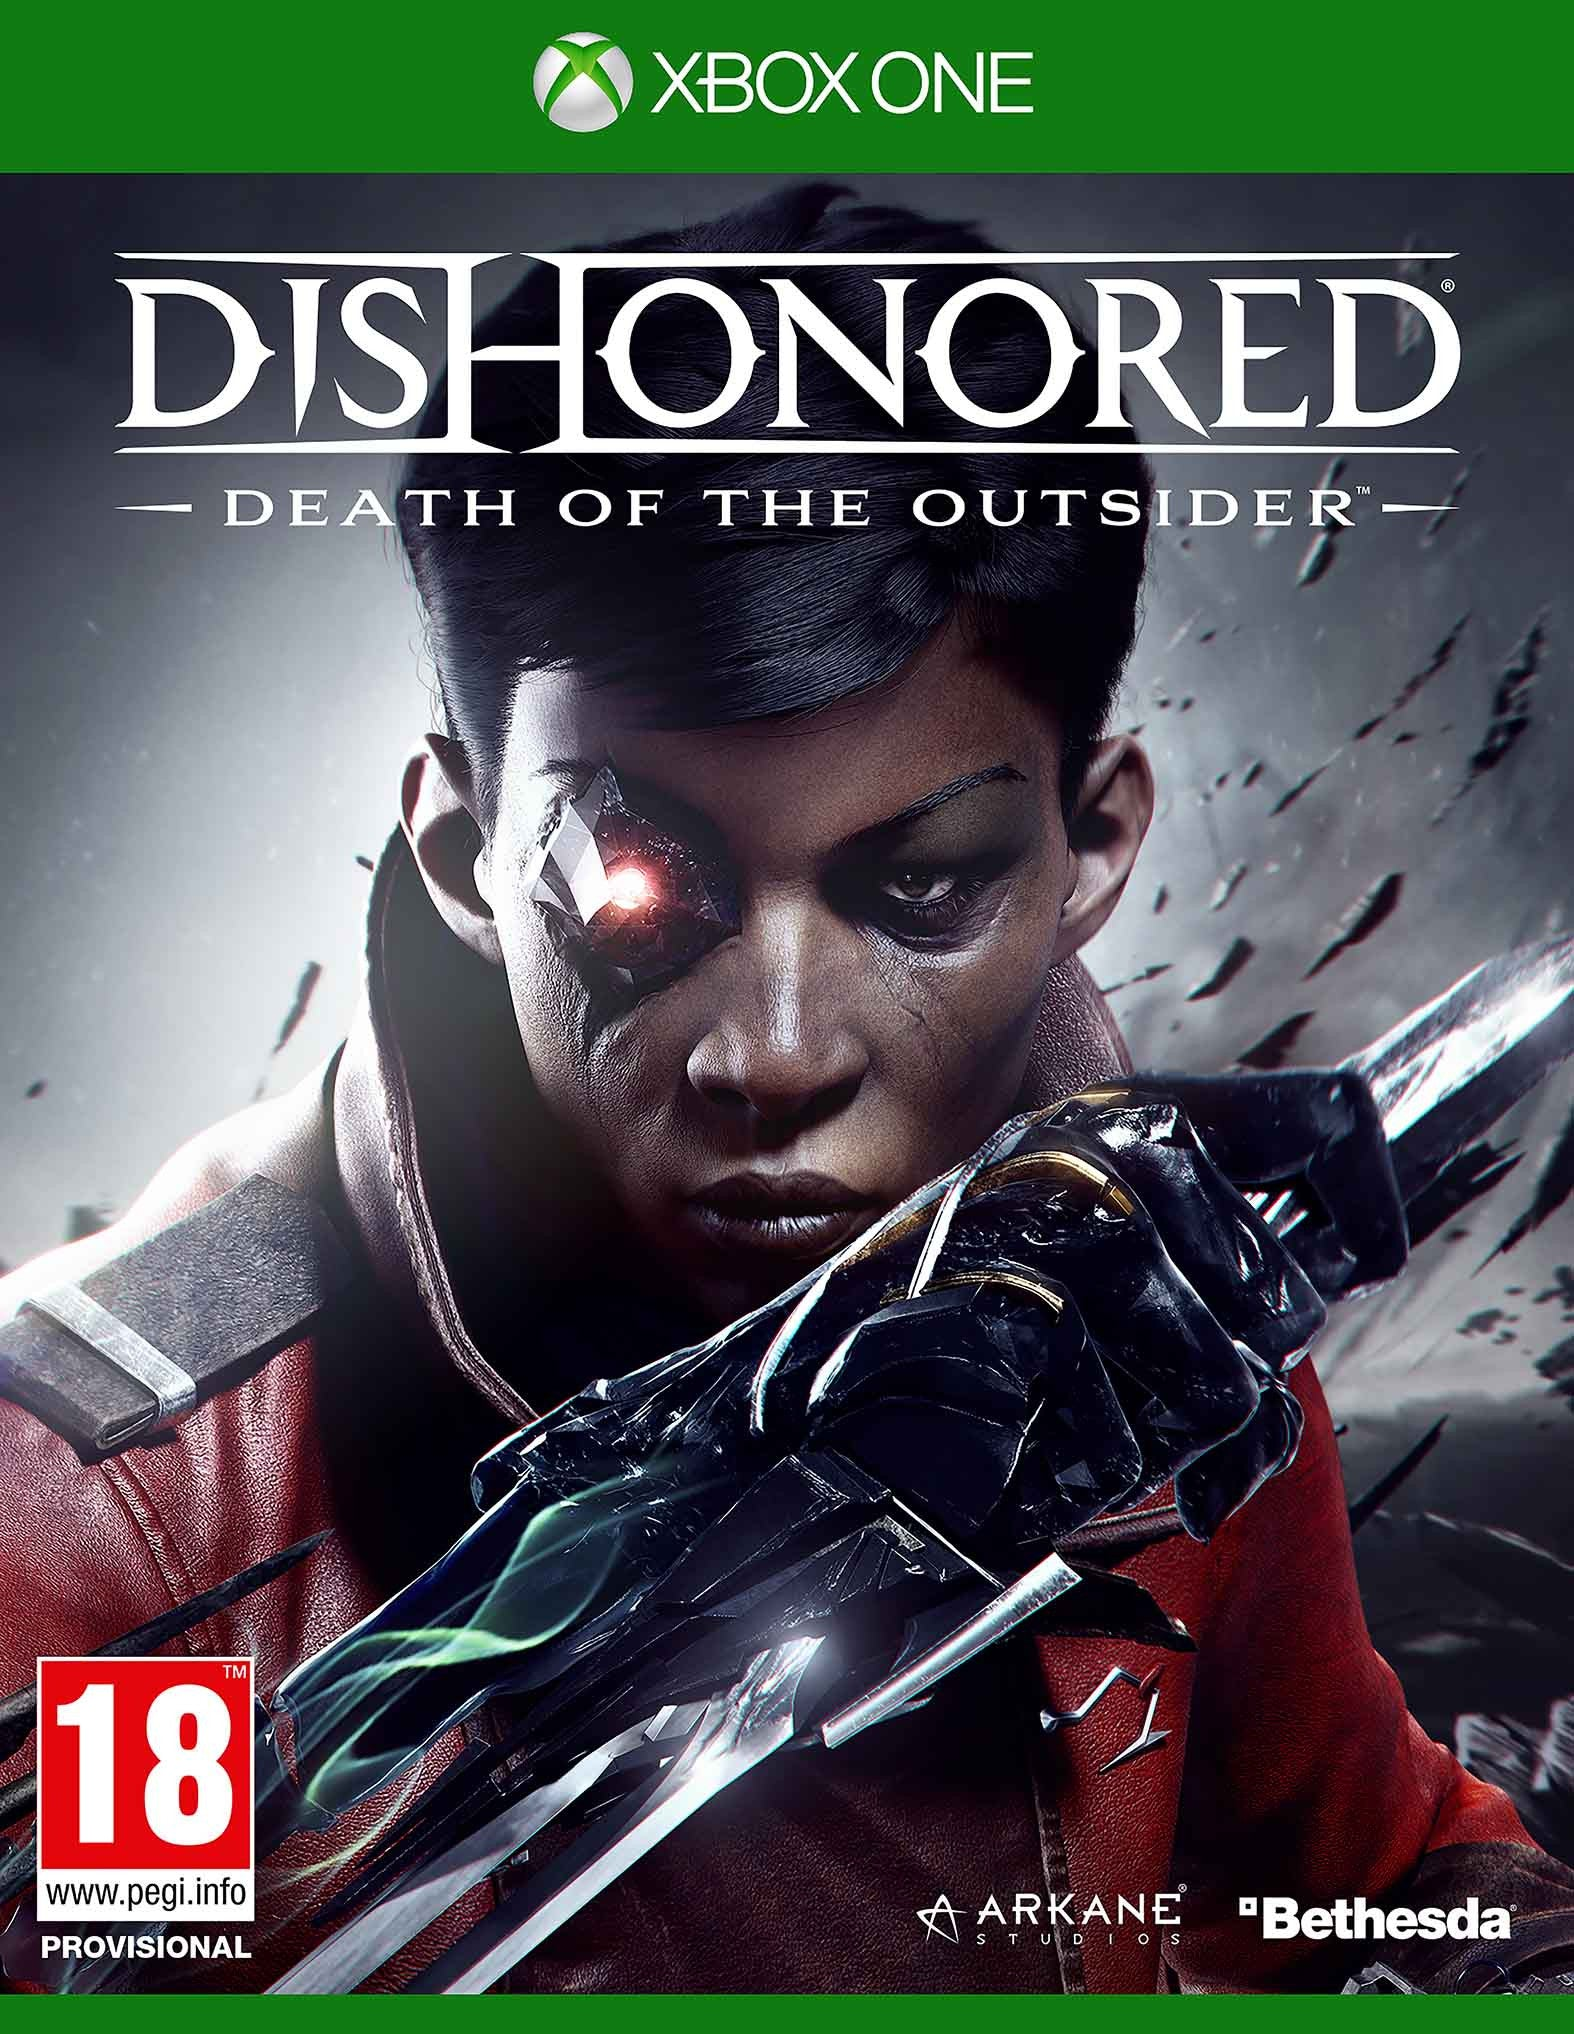 Dishonored: Death of the Outsider - Xbox One - Video Games by Bethesda The Chelsea Gamer